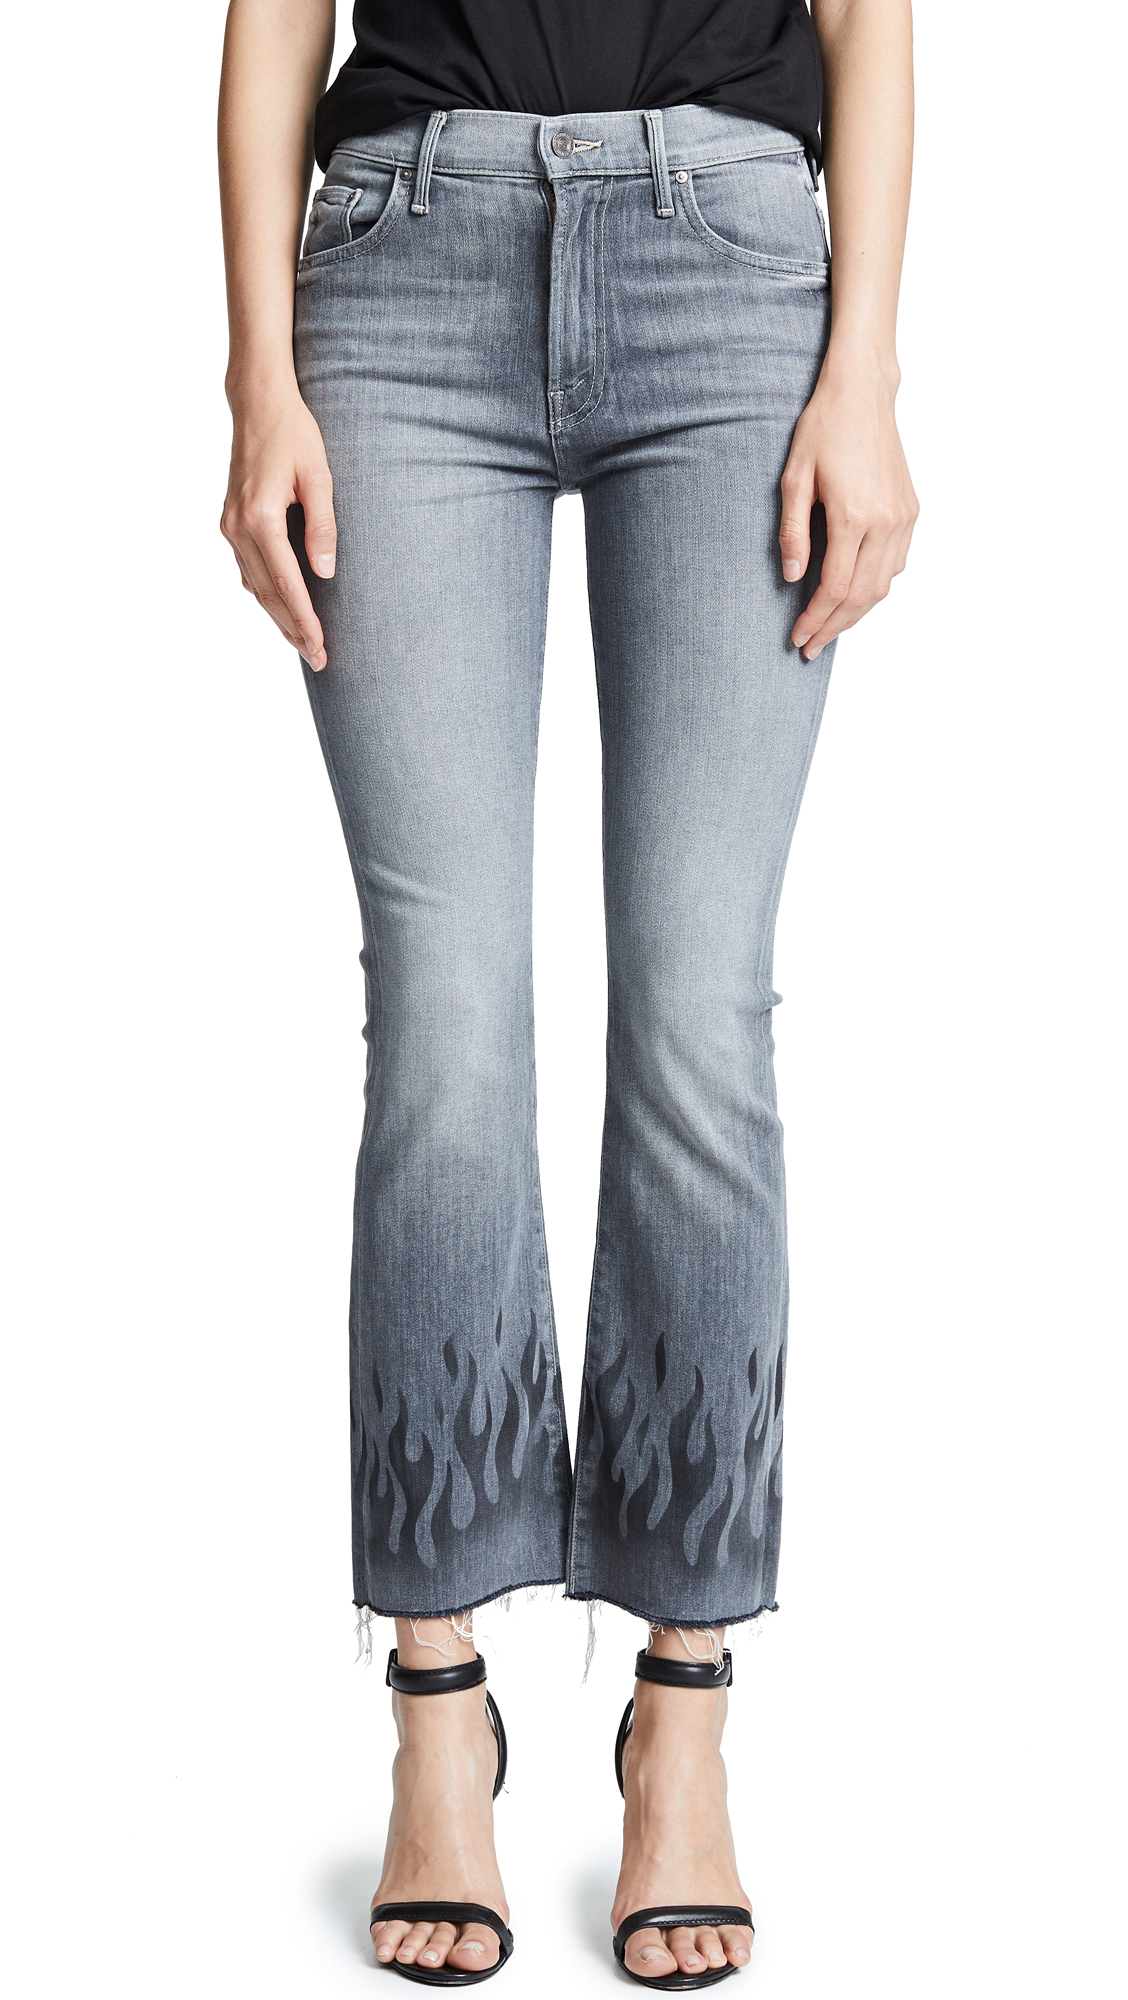 THE INSIDER ANKLE FRAY JEANS